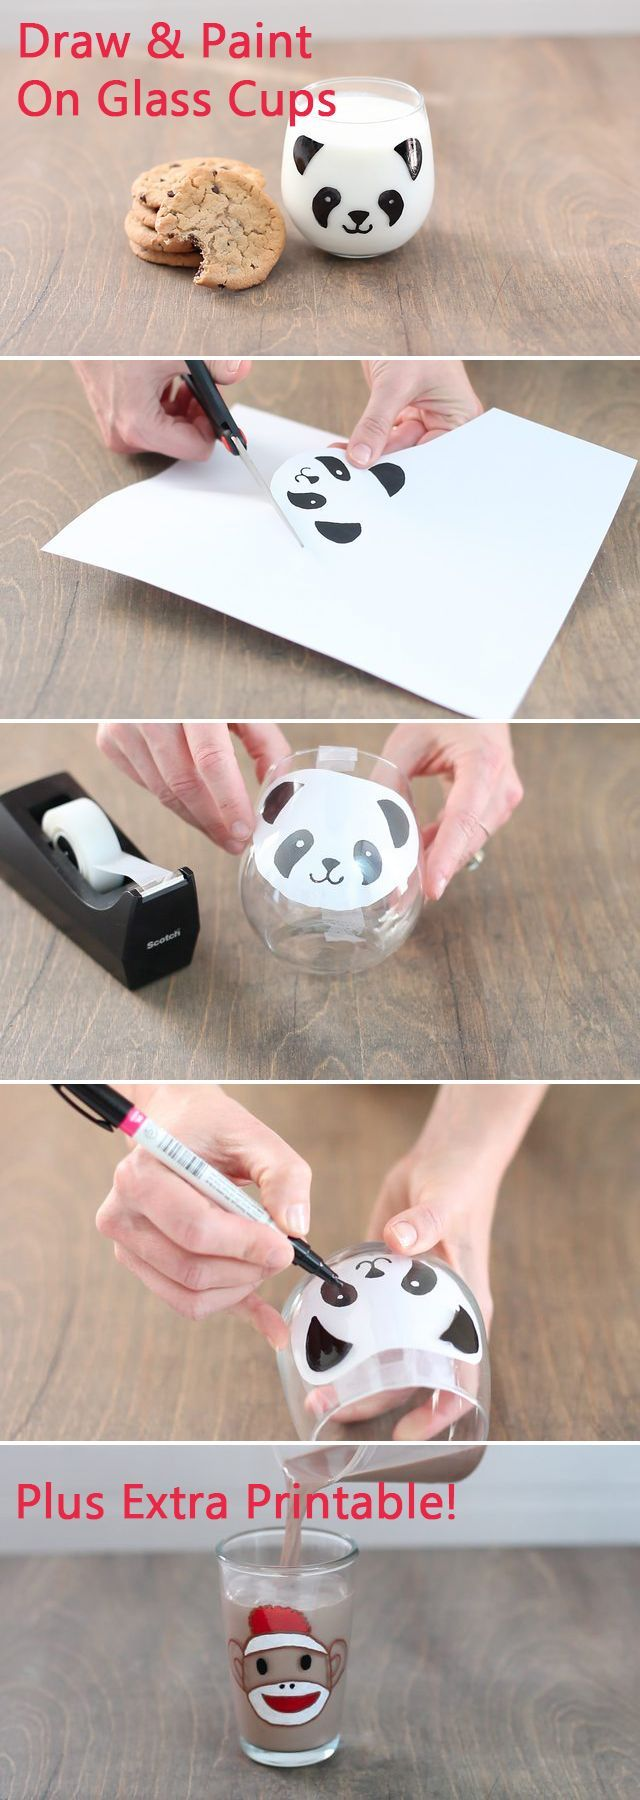 How adorable are these Panda (and sock monkey) glass milk cups! After drawing on the panda with our stencil, the milk fills in the rest! Just in time for Kung Fu Panda,  make these Panda cups at home with the kids and they'll LOVE drinking their milk.  Both printables available for free here: http://www.ehow.com/how_5911306_draw-paint-glass.html?utm_source=pinterest.com&utm_medium=referral&utm_content=freestyle&utm_campaign=fanpage